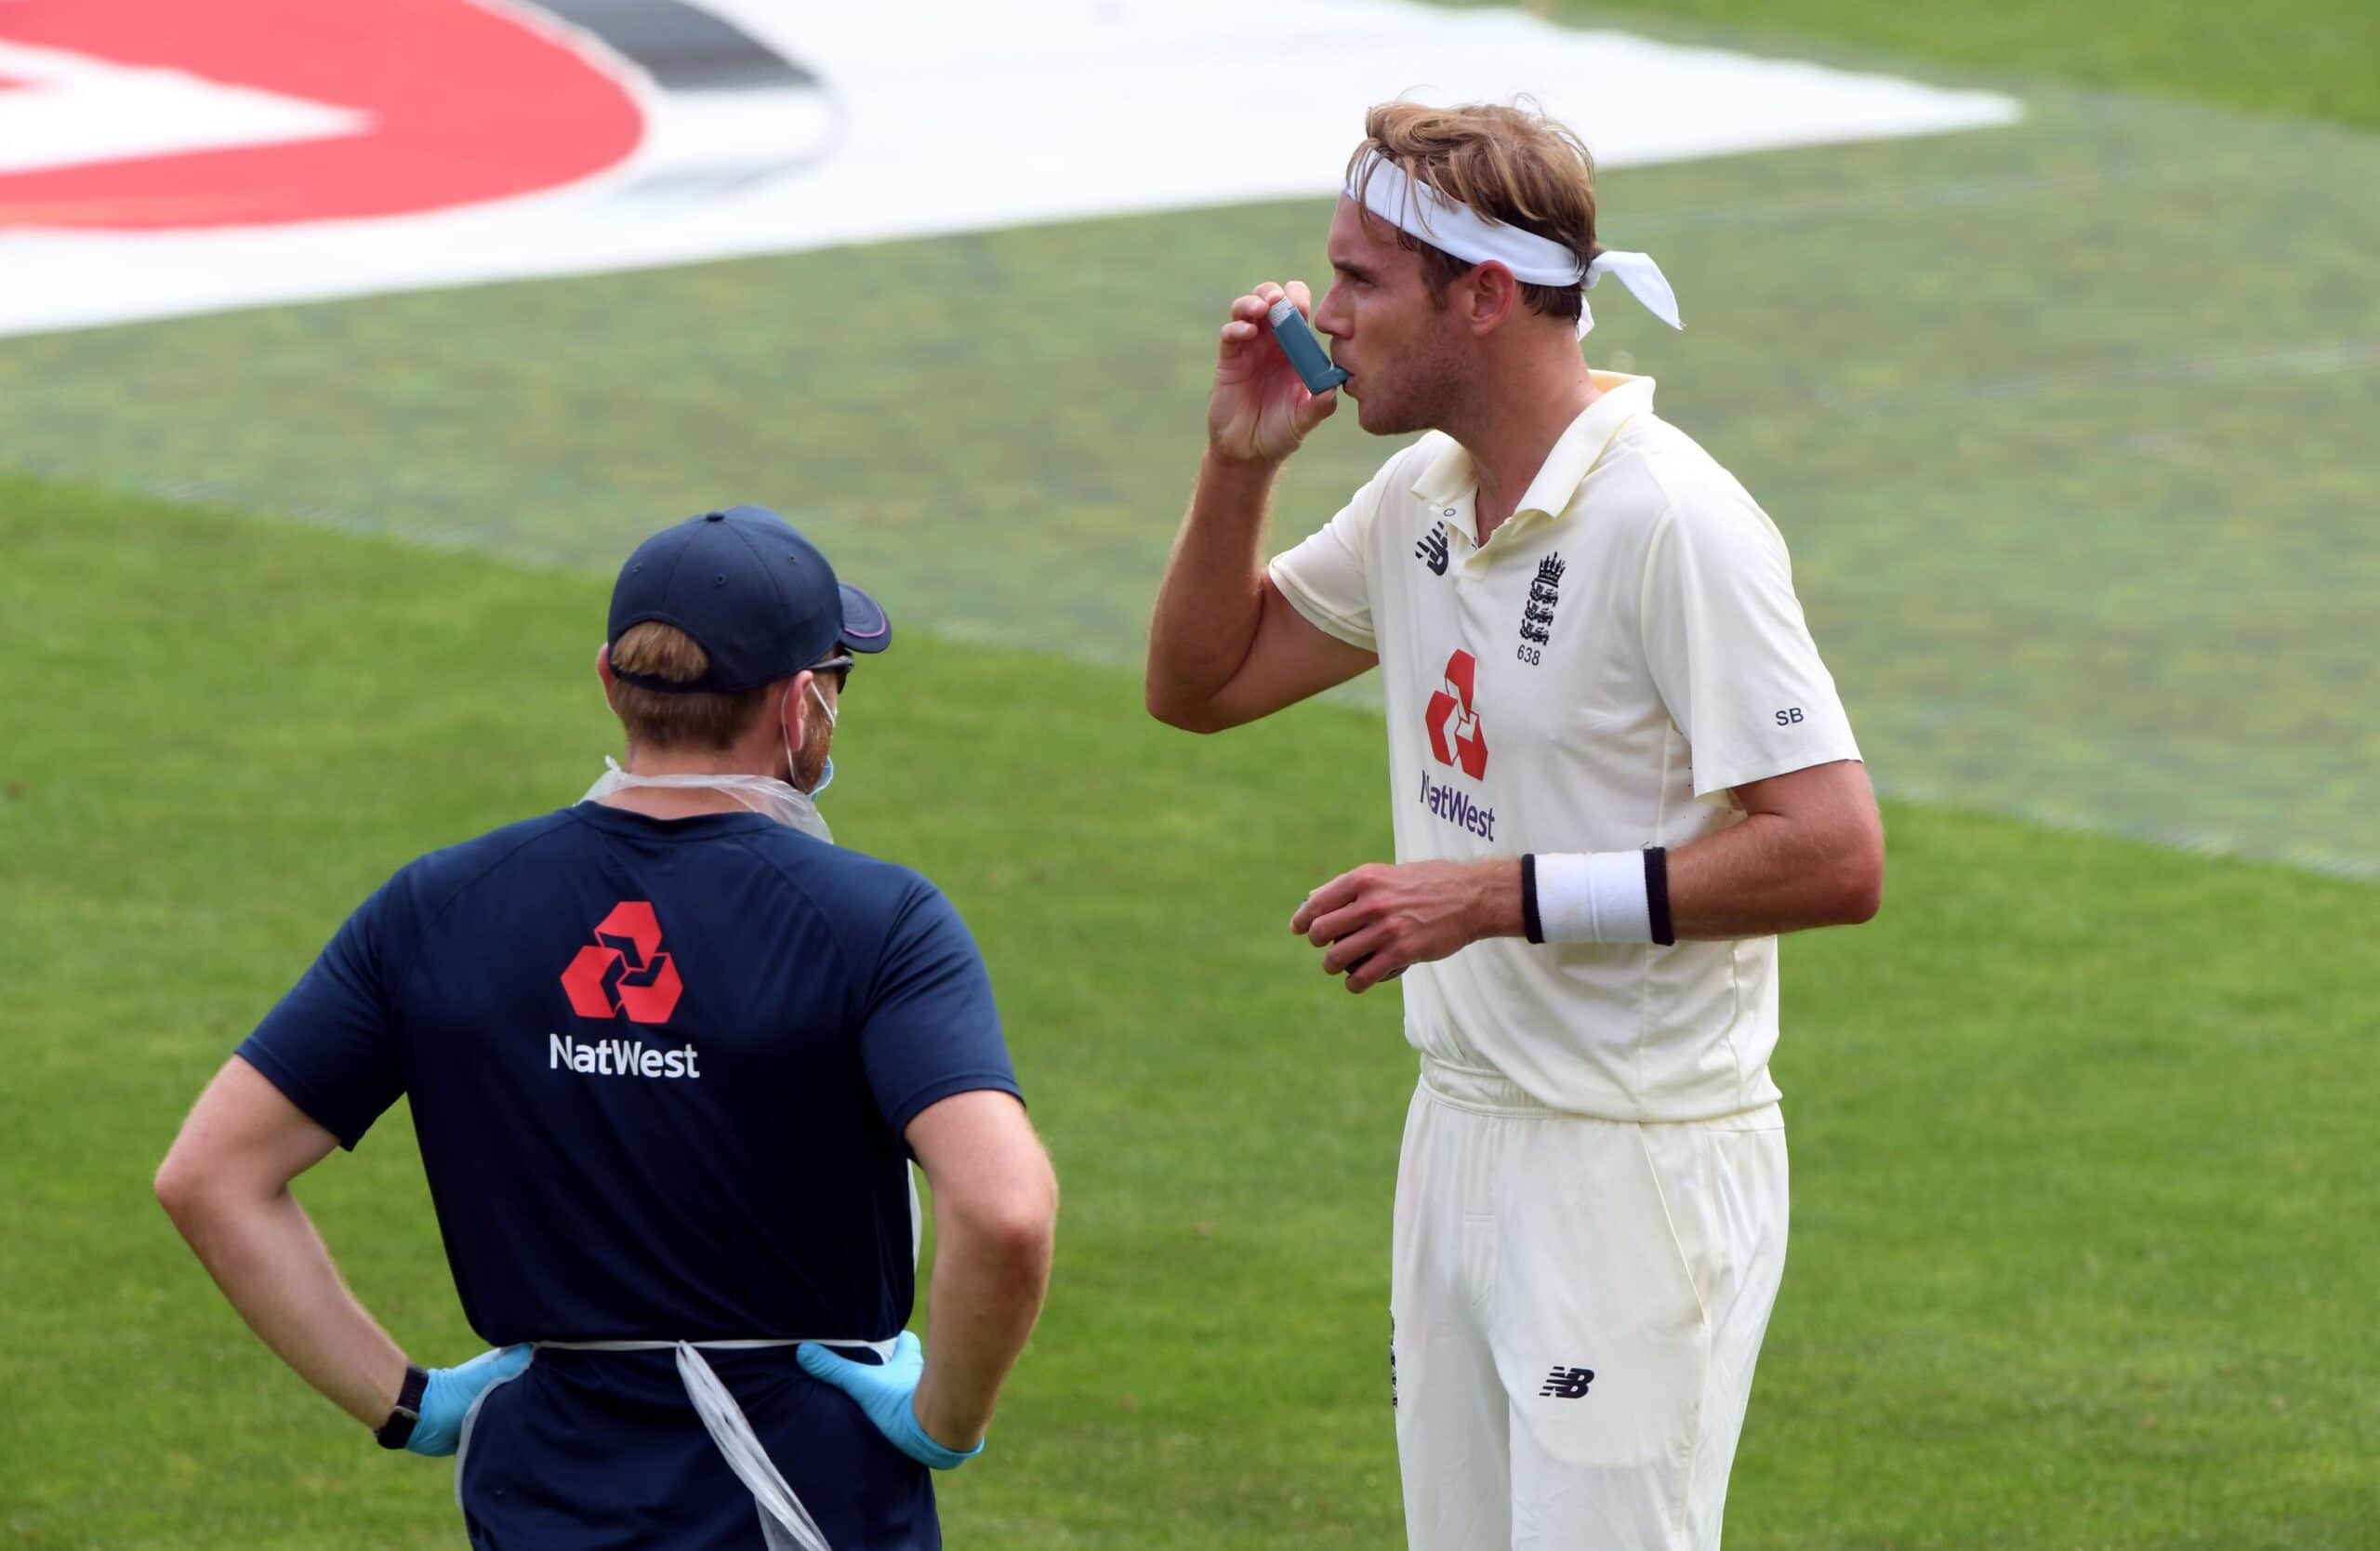 Stuart Broad On Coming To Terms With His Asthma